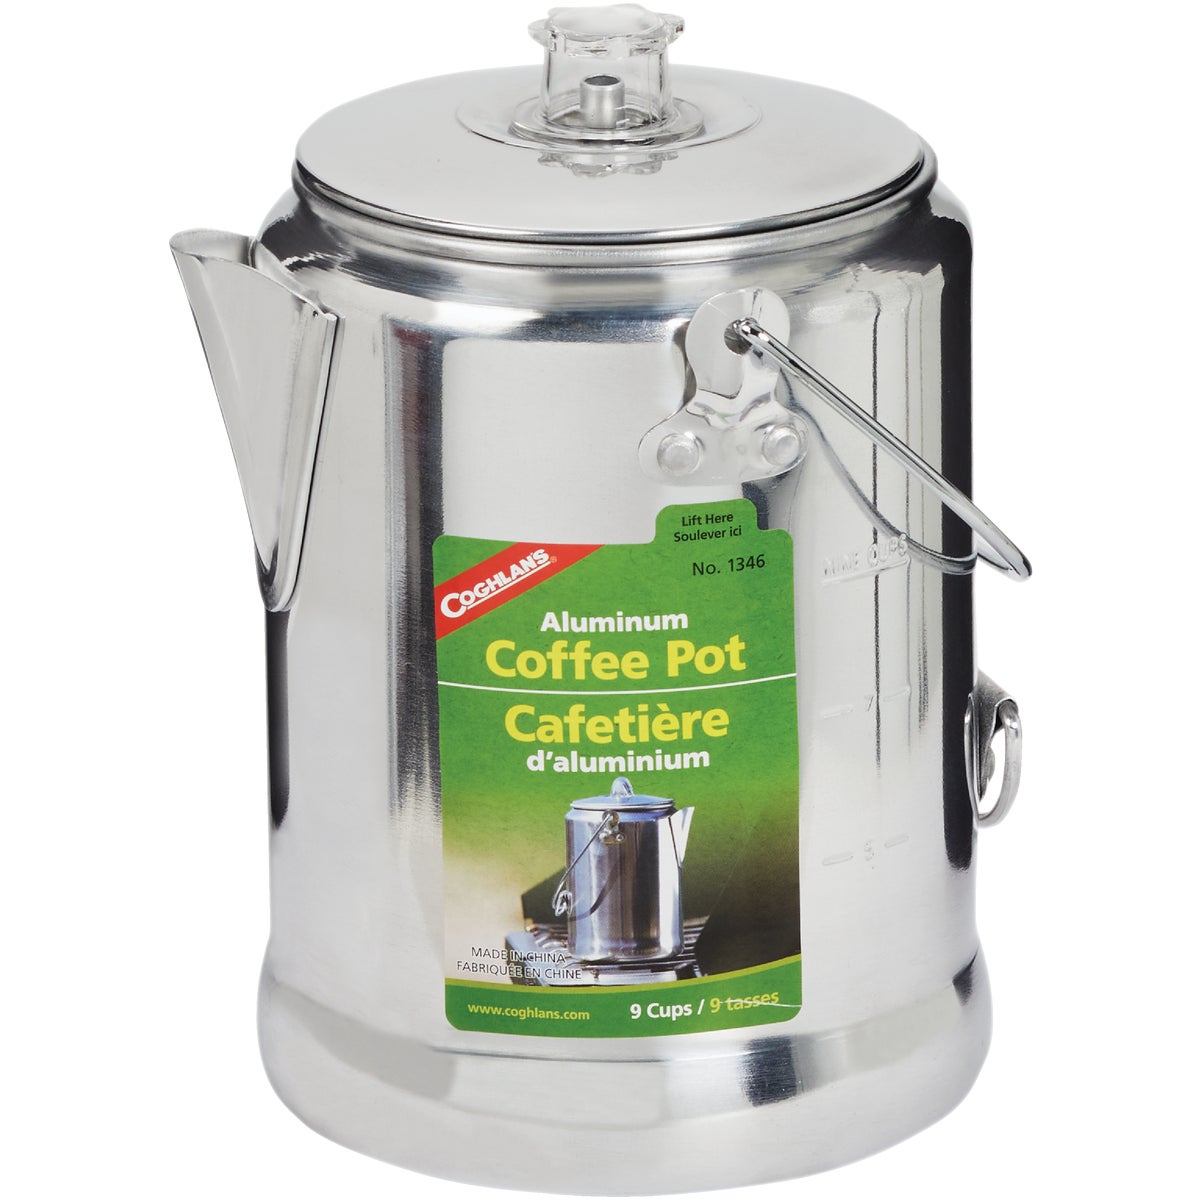 9CUP CAMPING COFFEE POT - 50070 by Academy Broadway Cor